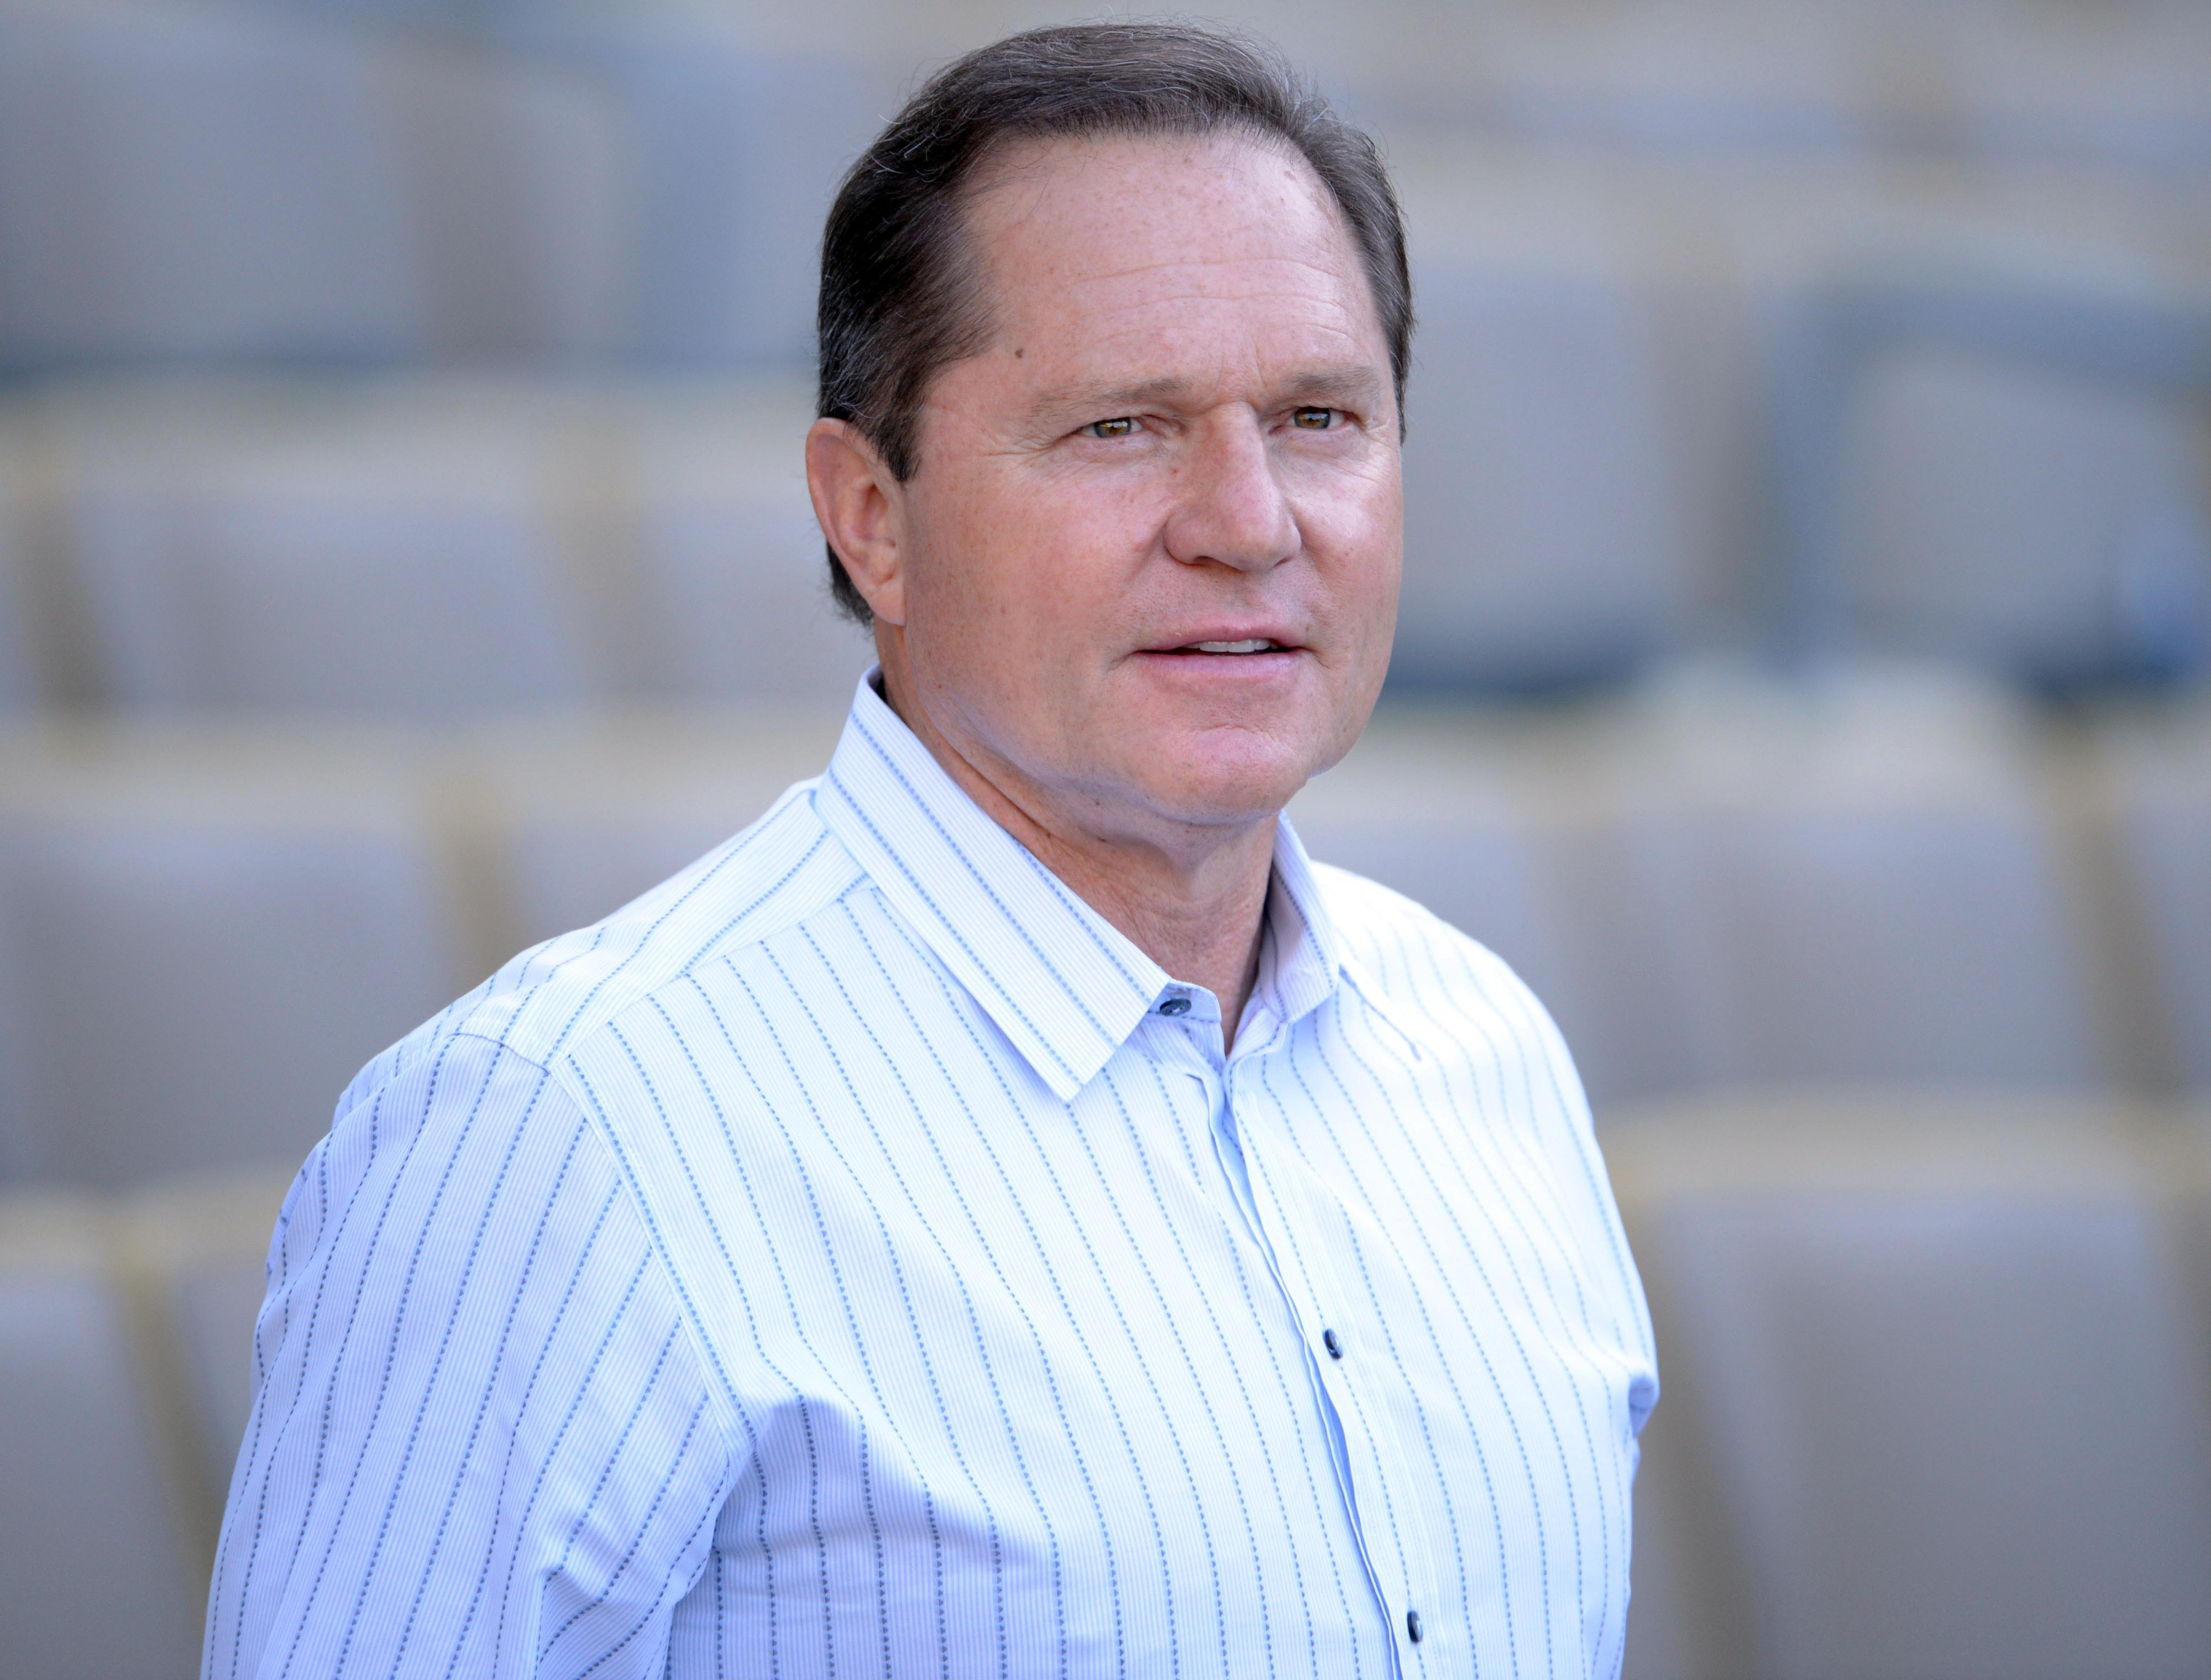 Thank your deity of choice that the Texans don't have to deal with Scott Boras.